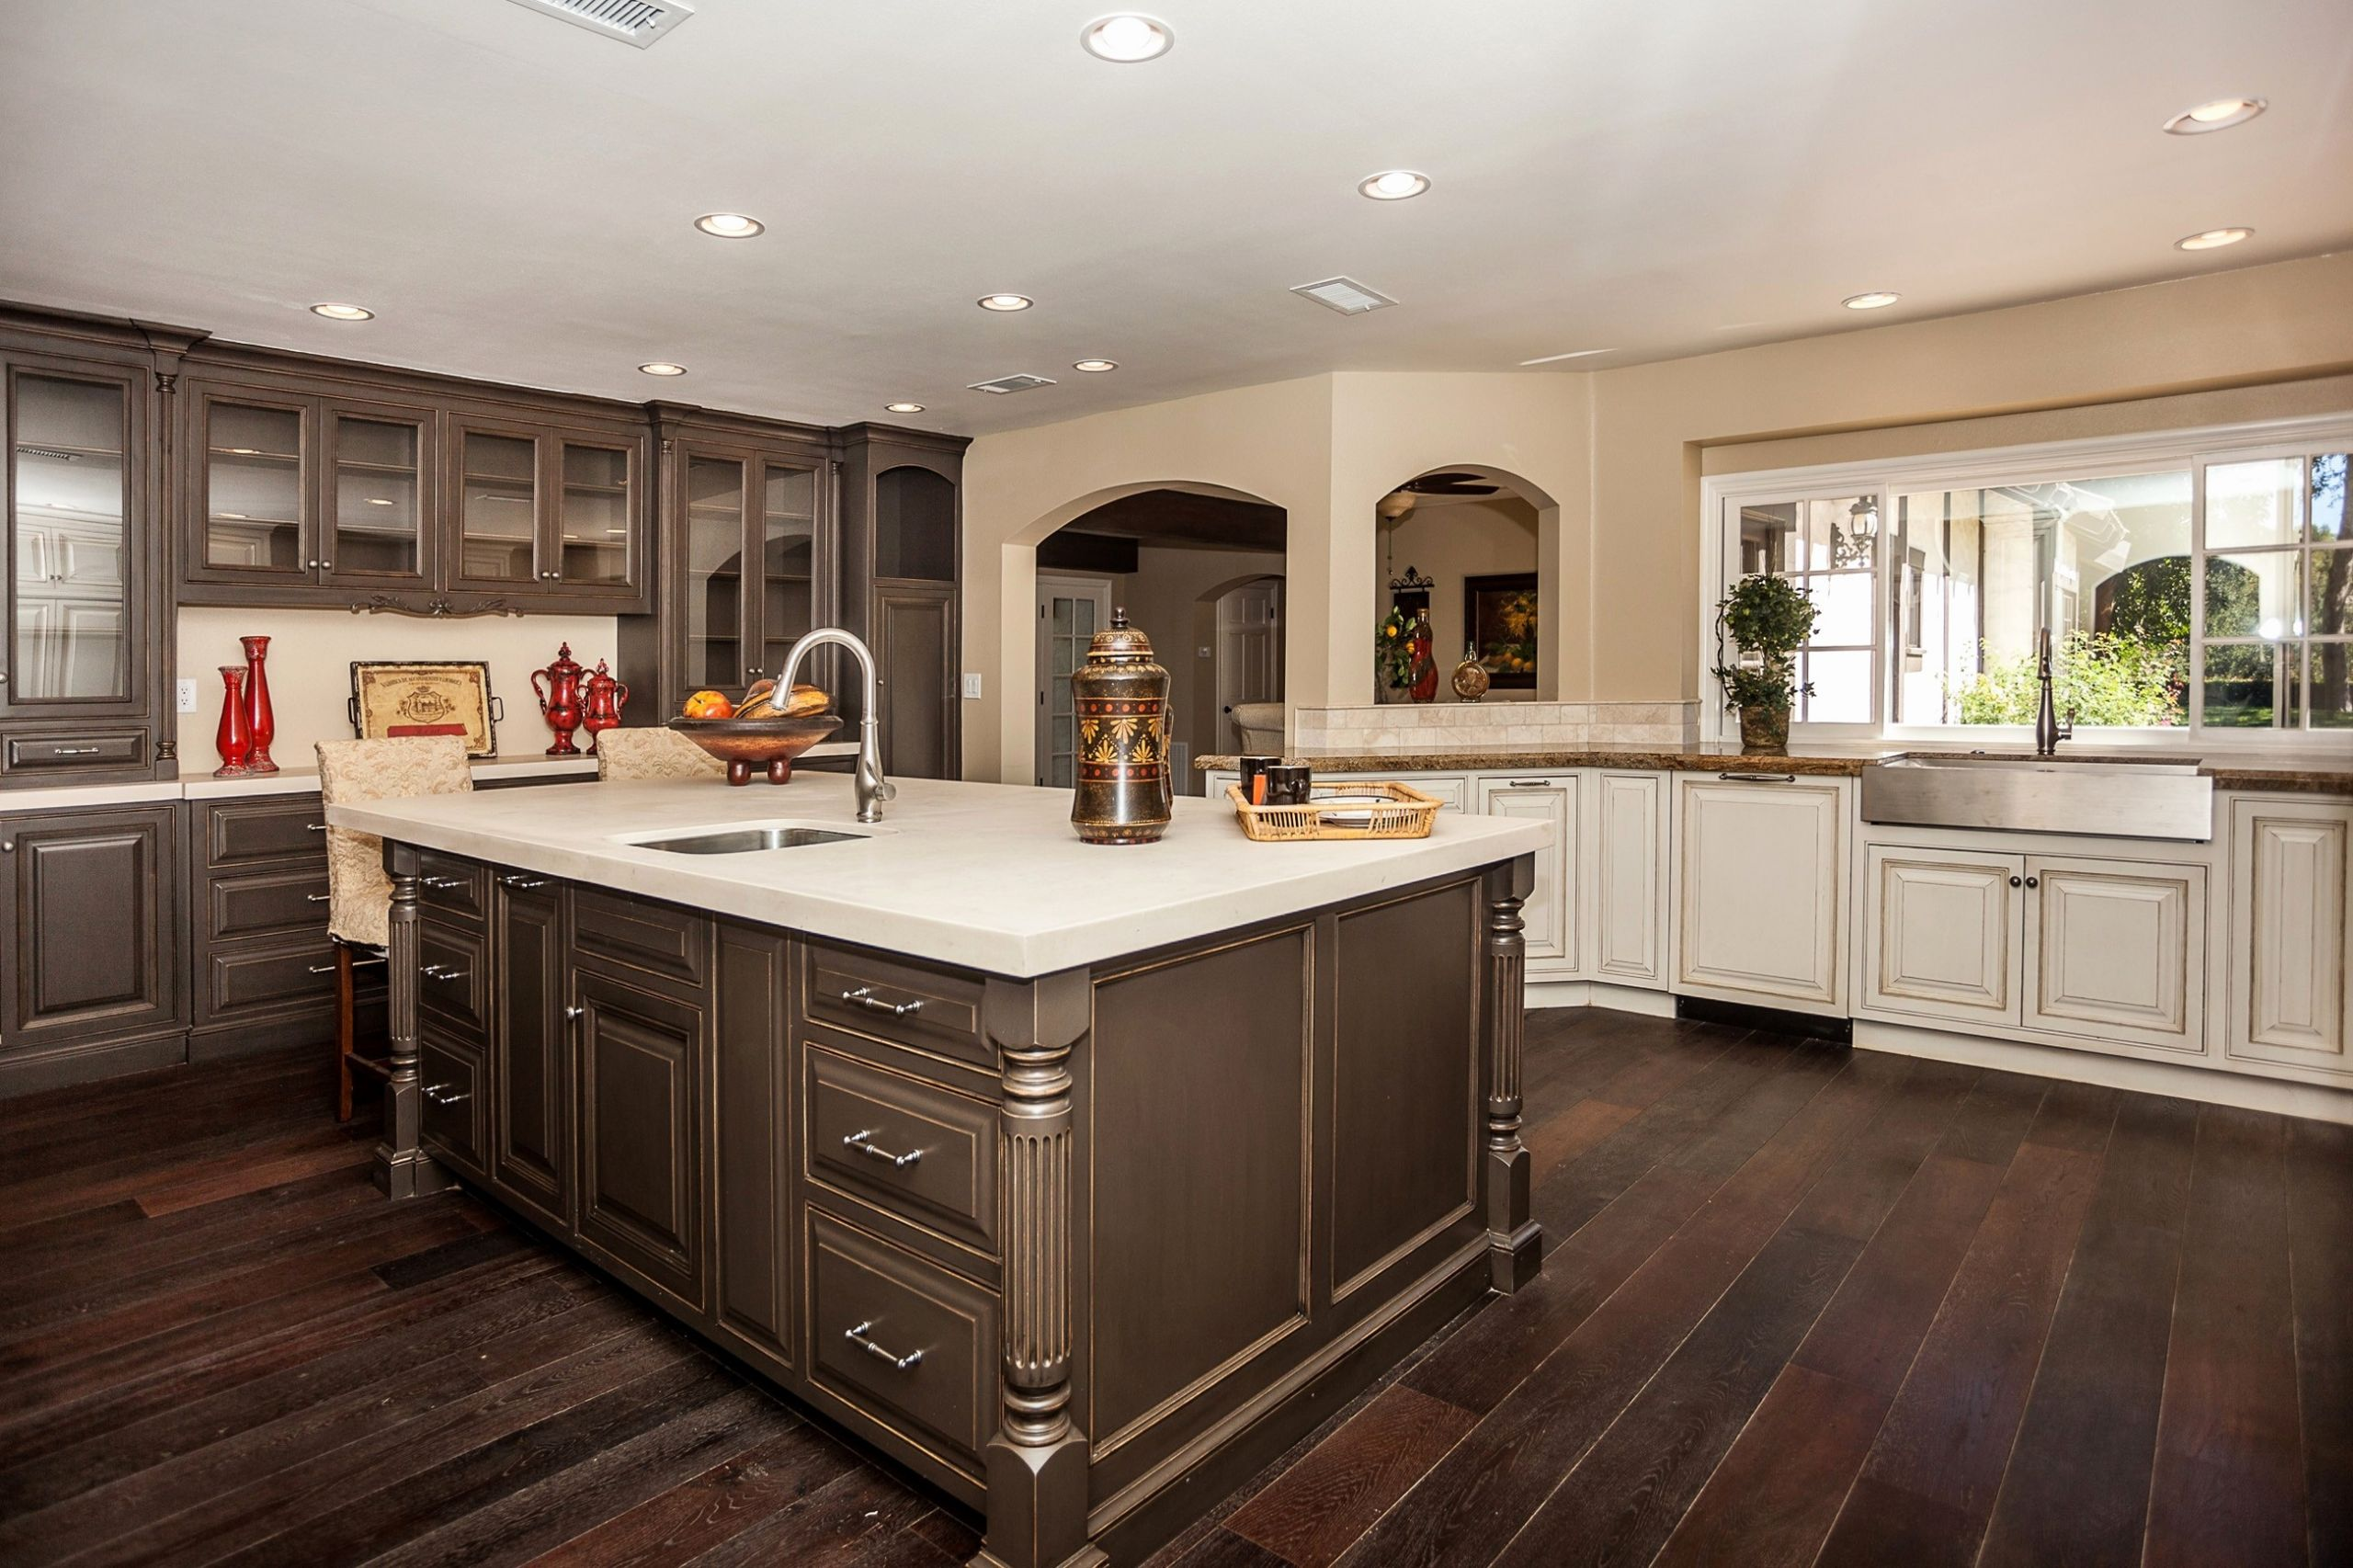 grey hardwood floors with white cabinets of 41 collection kitchen colors with brown cabinets image living room for light colored kitchen cabinets best s od double door refrigerator fully fur